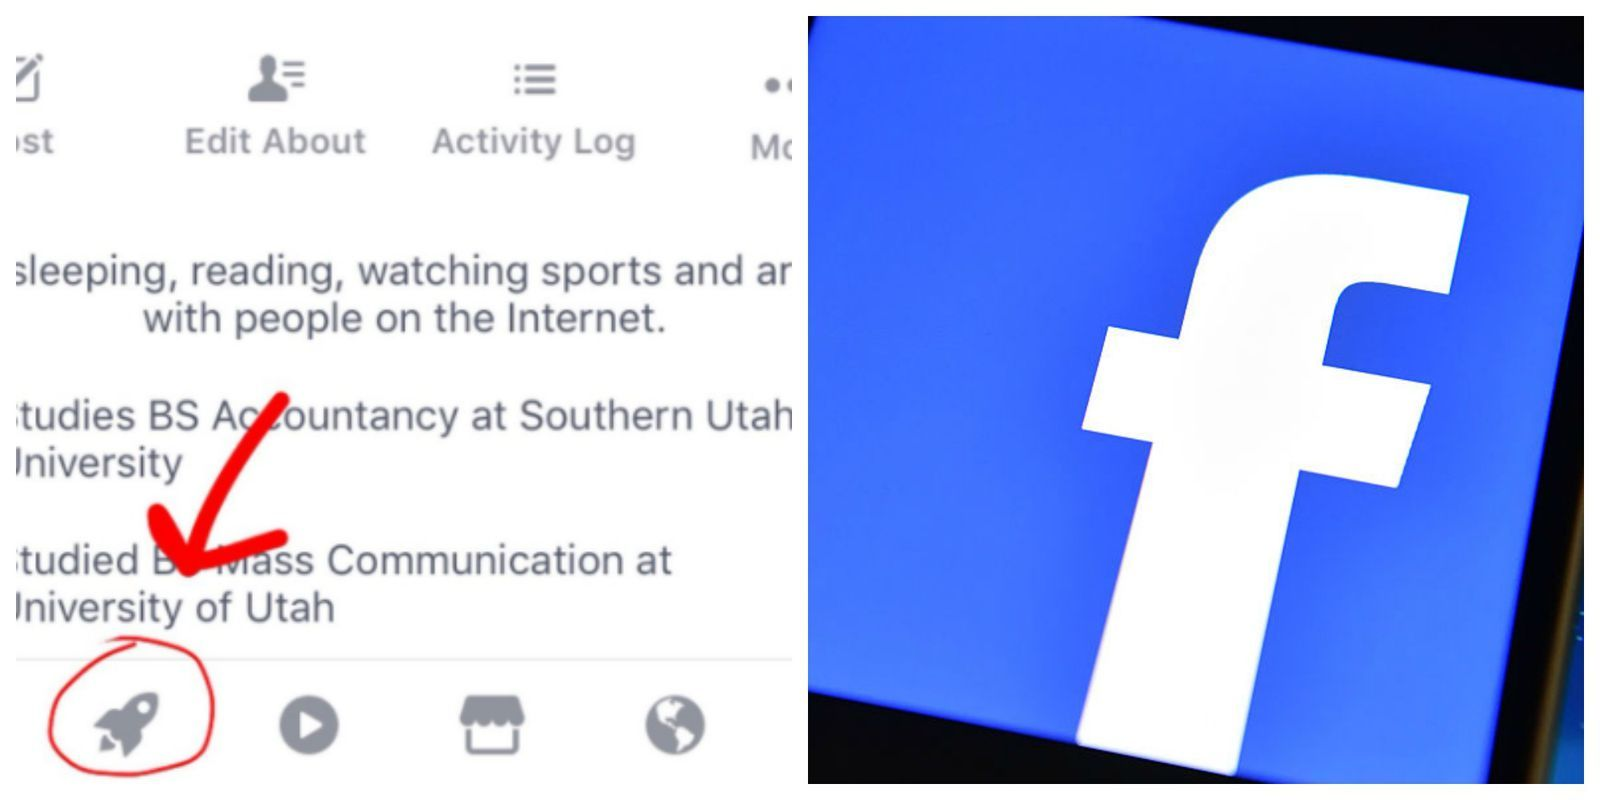 This Is What Facebook S Mysterious New Icon Means New Icon Icon Meaning Facebook App